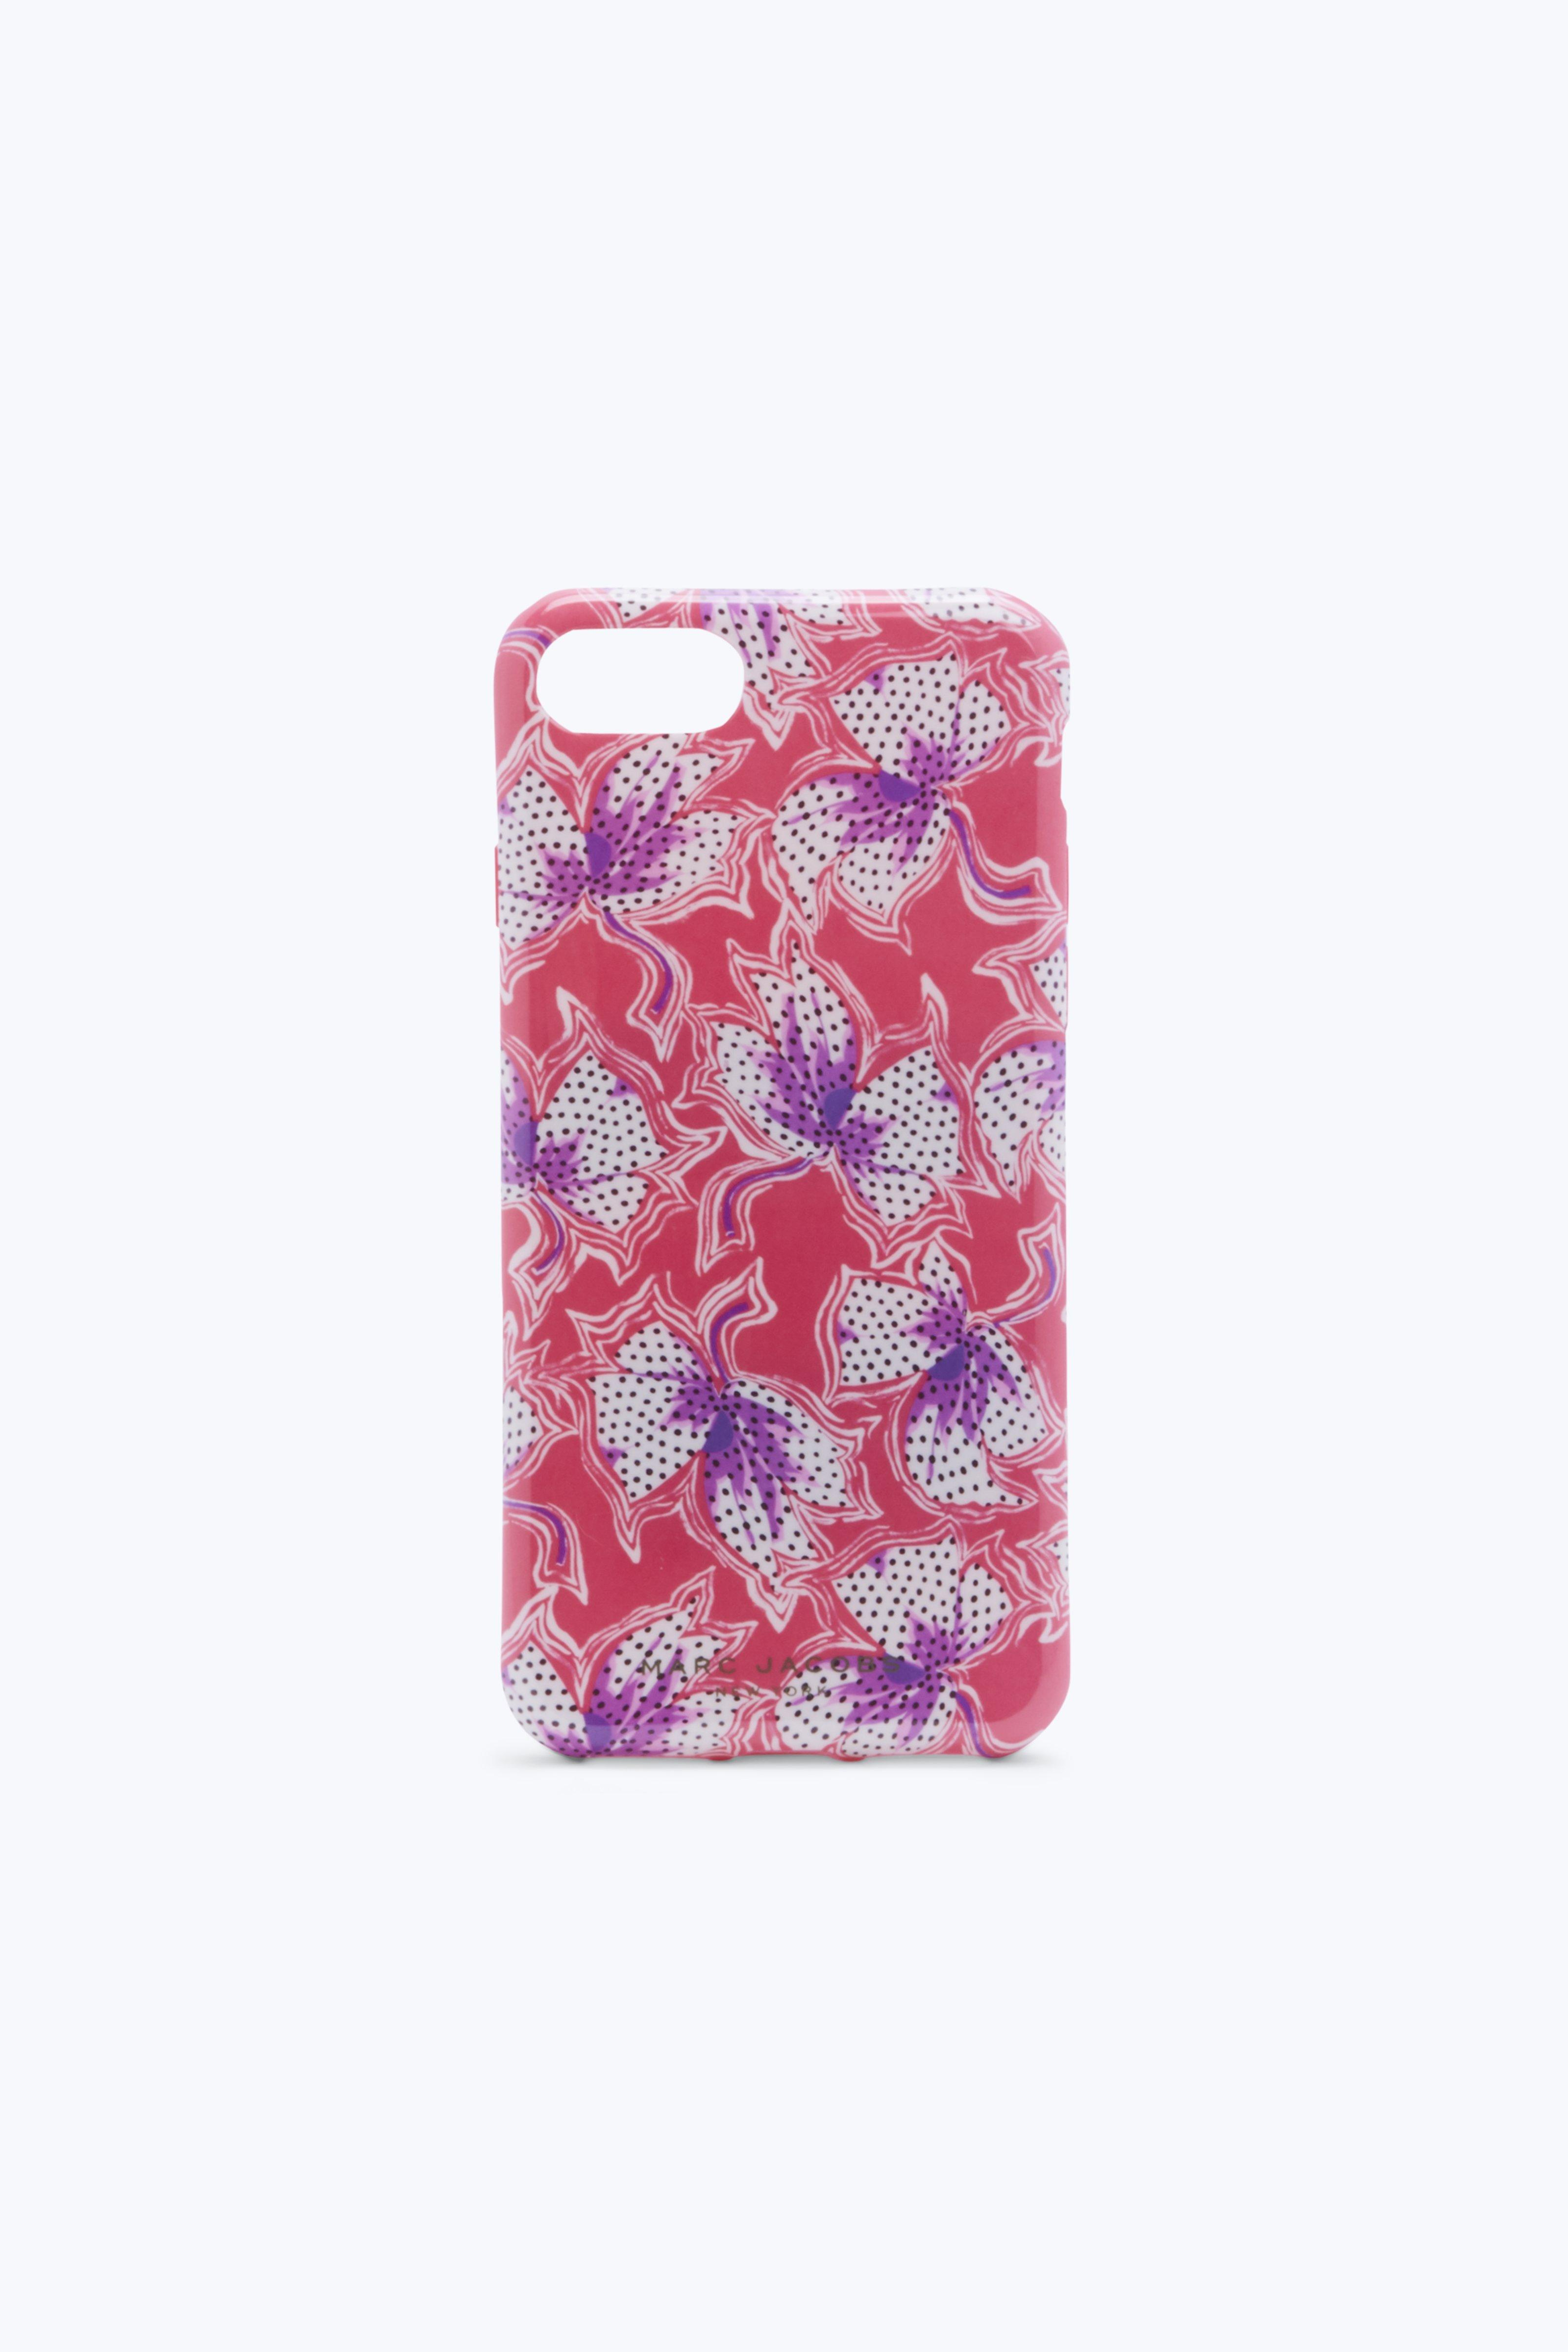 Marc Jacobs Spotted Lilly Iphone 6 / 6S / 7 Case In Red Multi